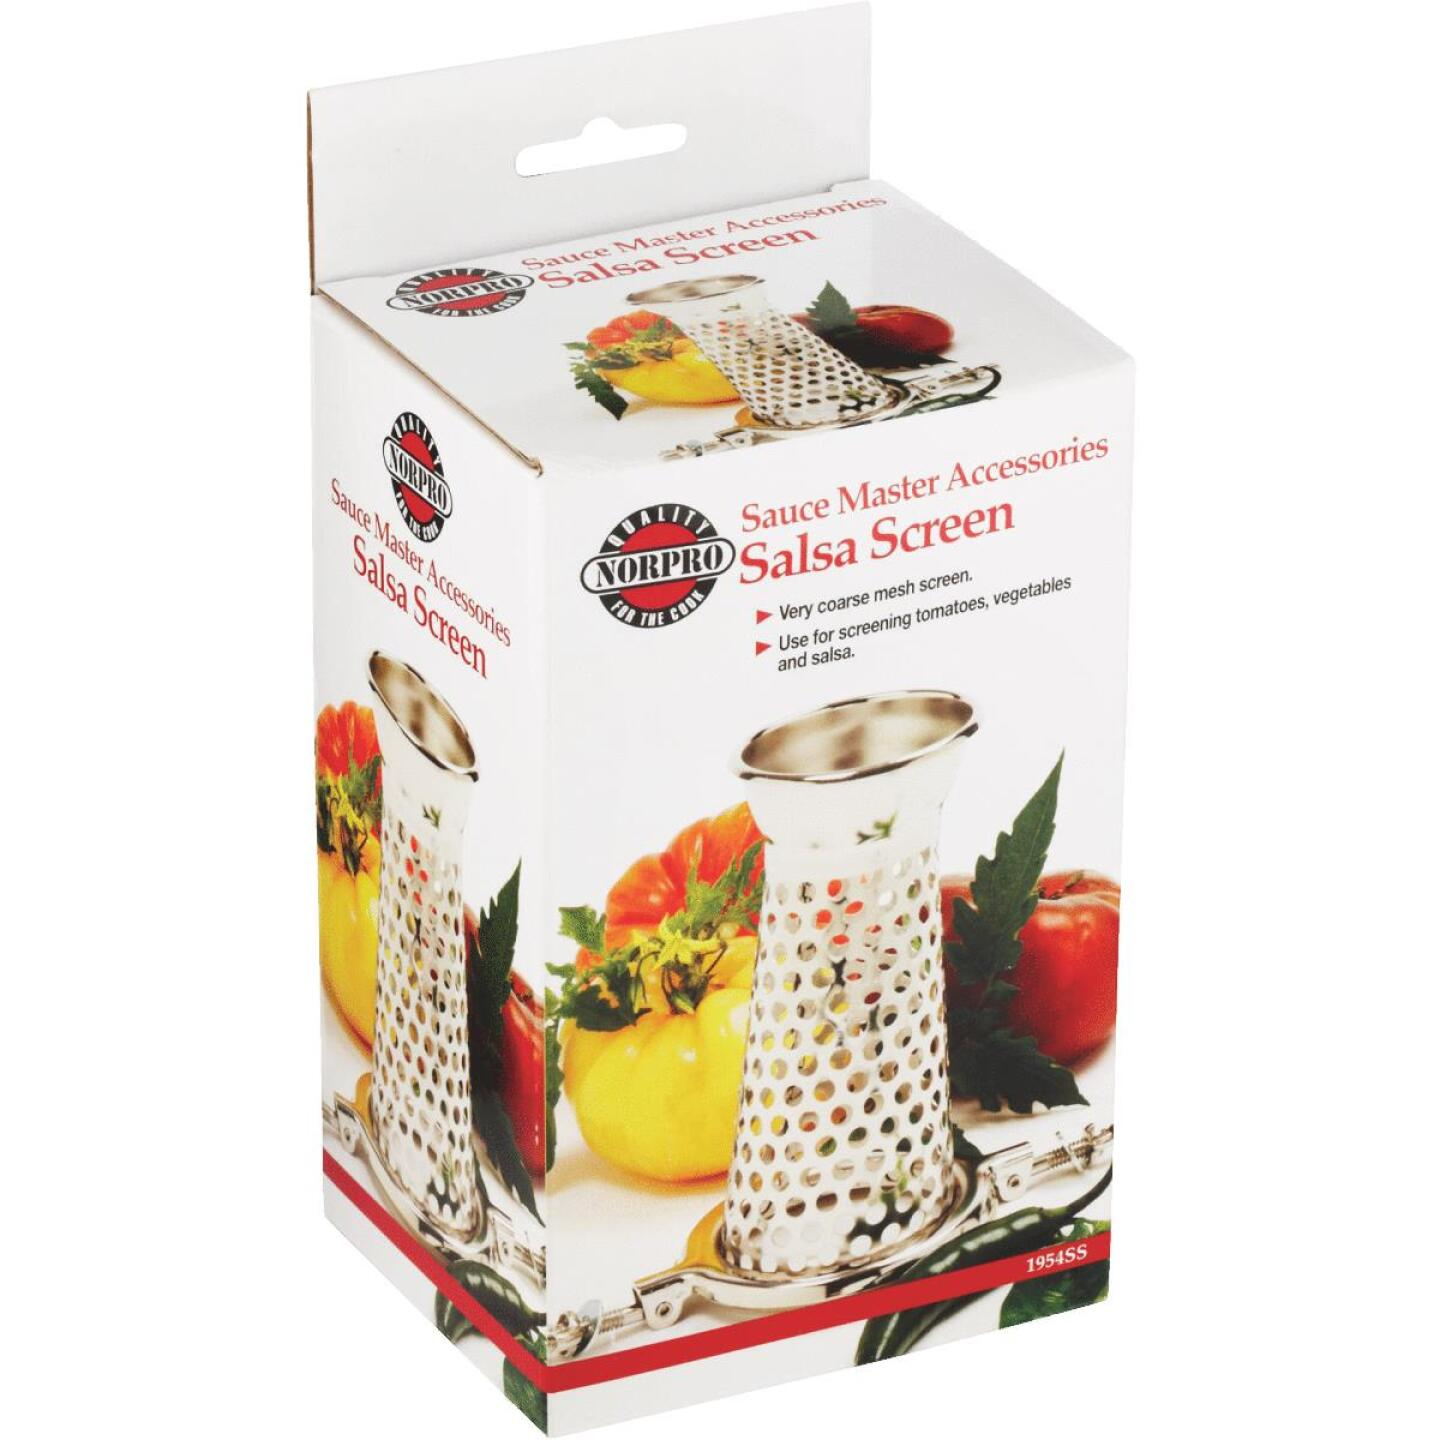 Sauce Master 6 In. x 3.5 In. Vegetable & Fruit Strainer - Salsa Screen Image 5